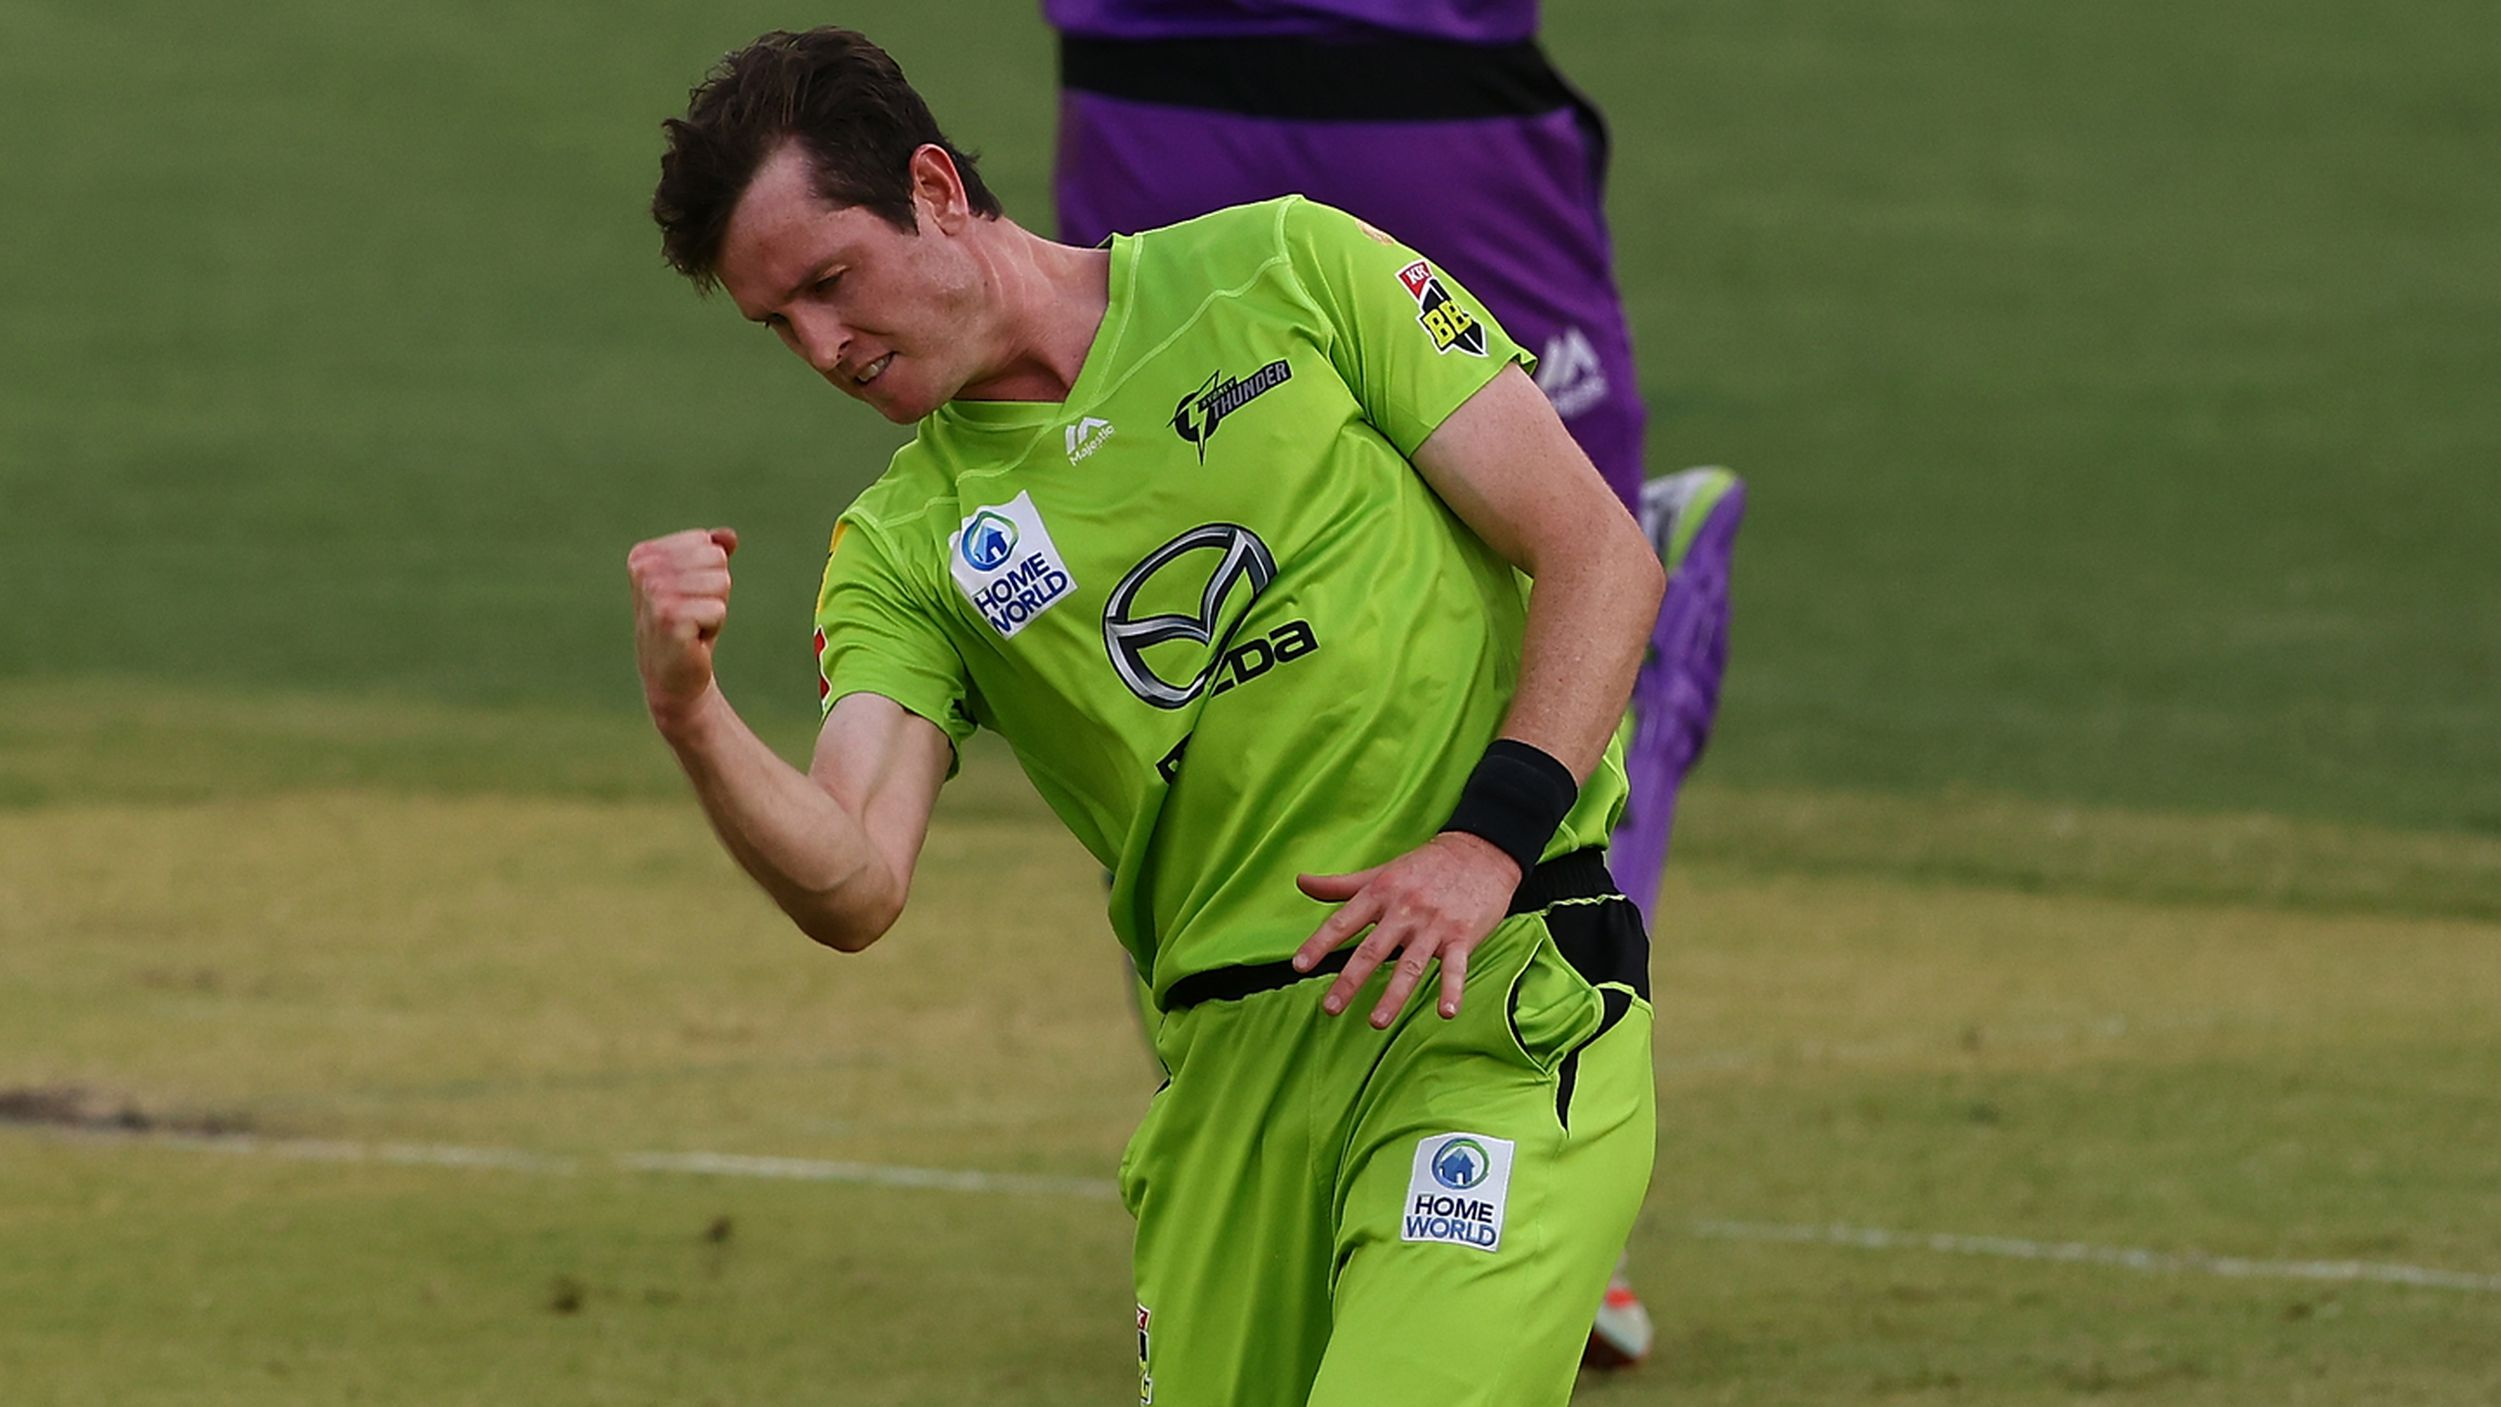 Sydney Thunder return to the top of the BBL standings with a clinical win over Hobart Hurricanes